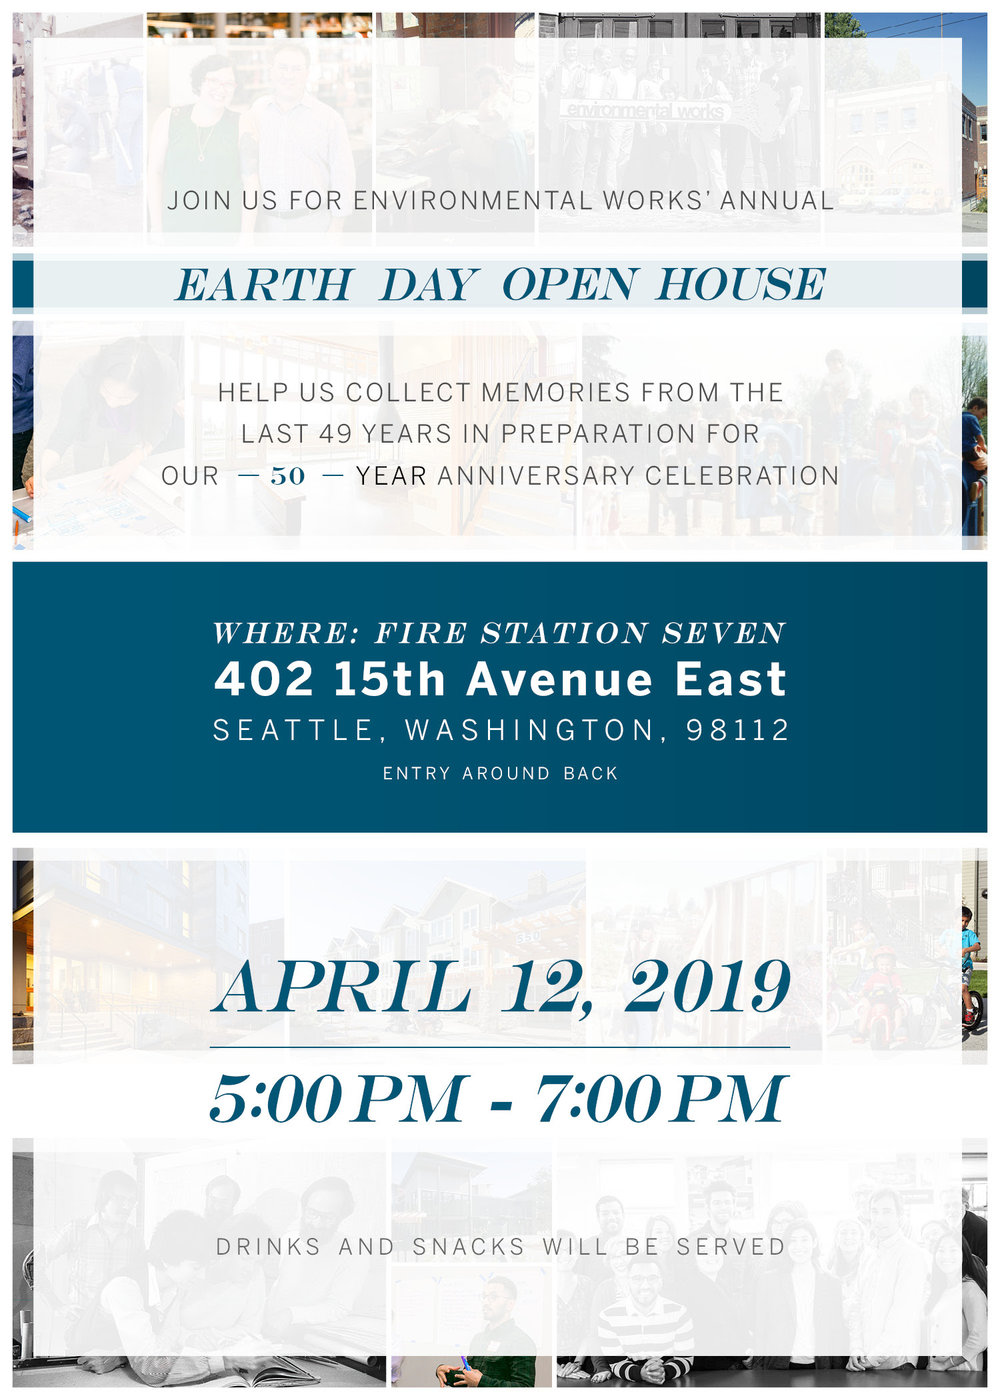 2019 Earth Day invite.jpg